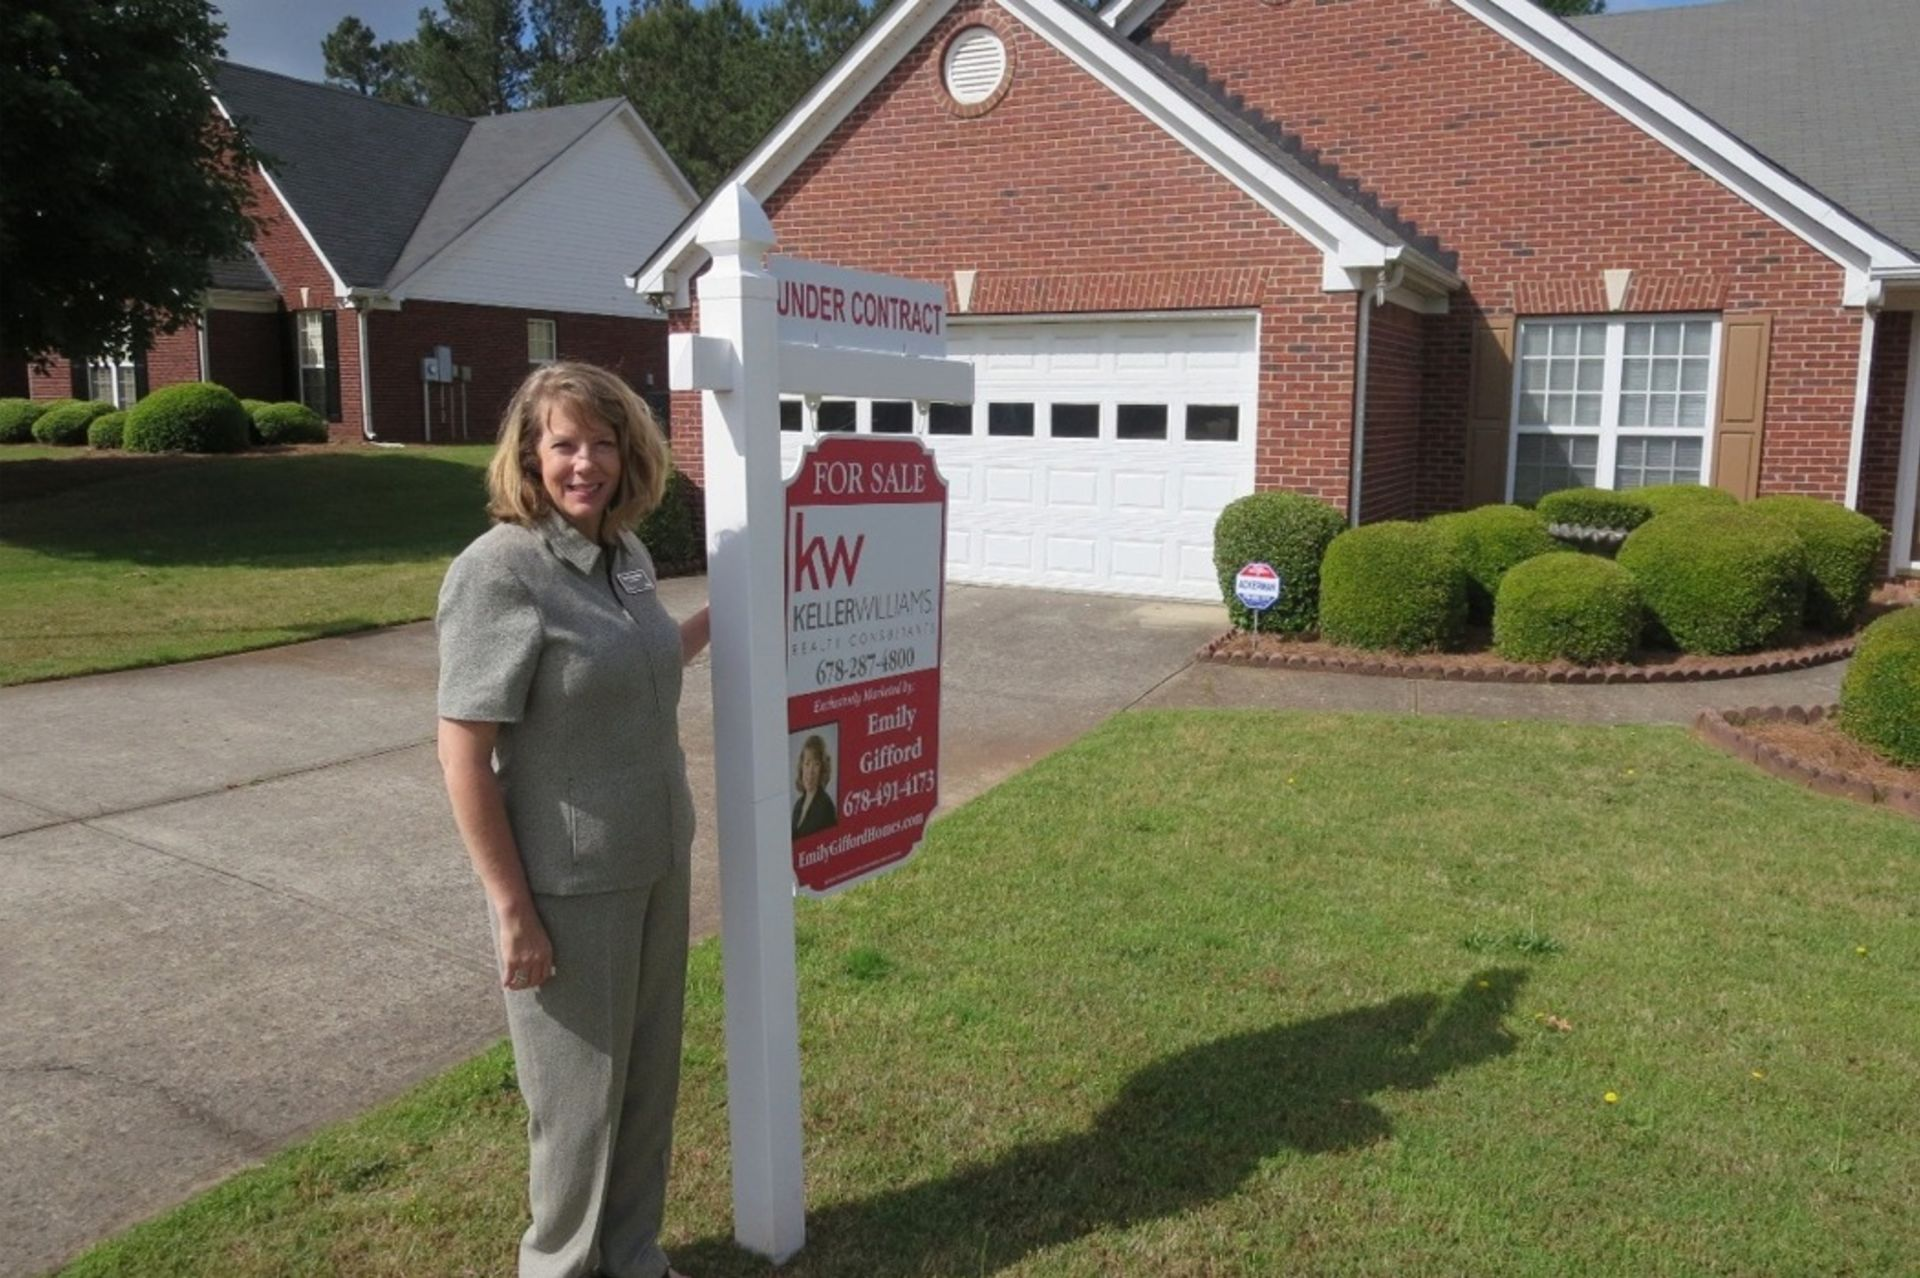 Home Sales are Great in Gwinnett!